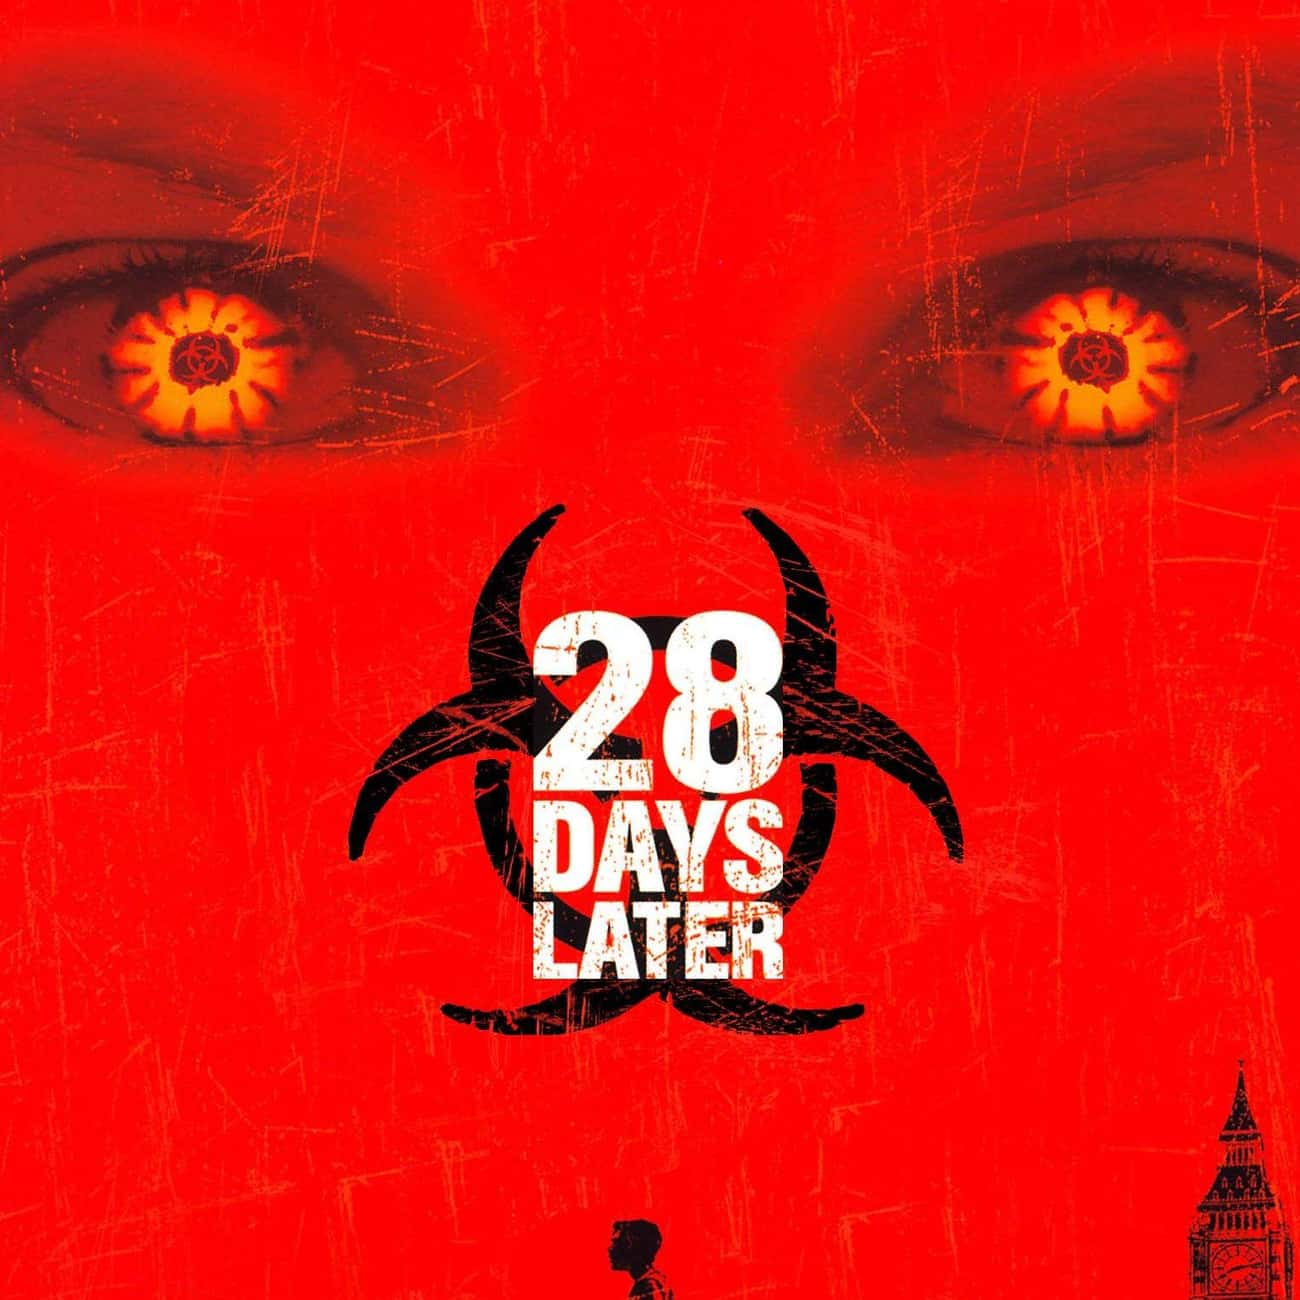 """28 Days Later is listed (or ranked) 1 on the list Shows & Movies to Watch If You Love """"The Walking Dead"""""""